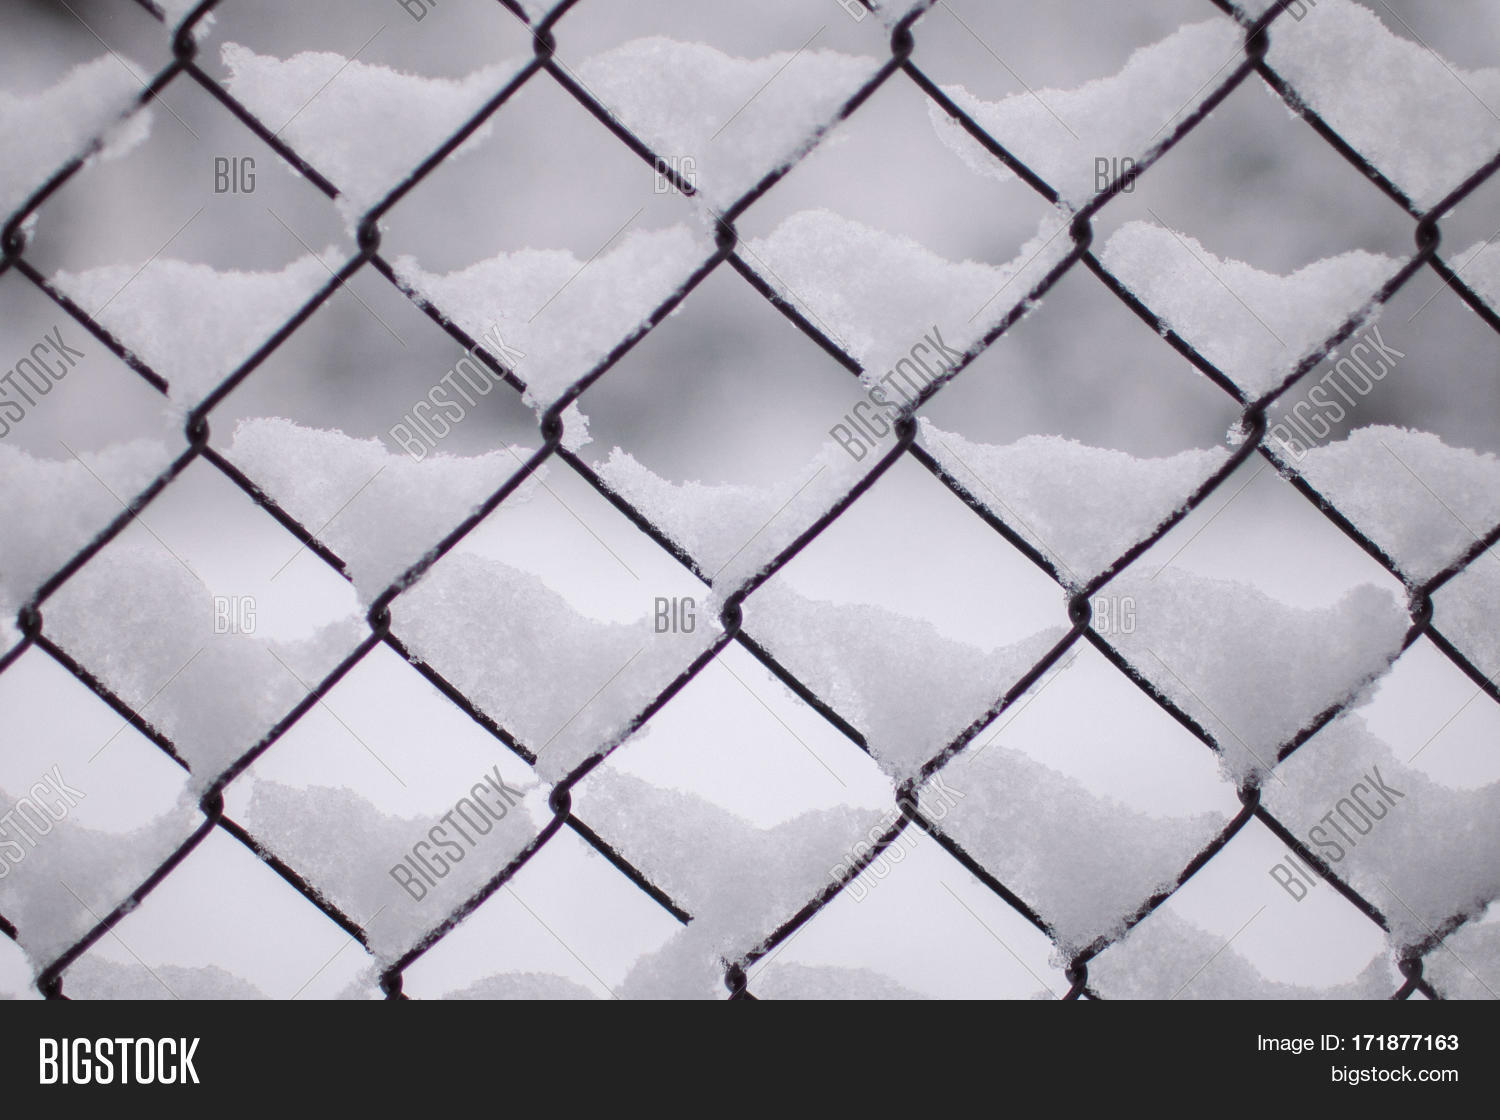 Fence Background. Image & Photo (Free Trial) | Bigstock